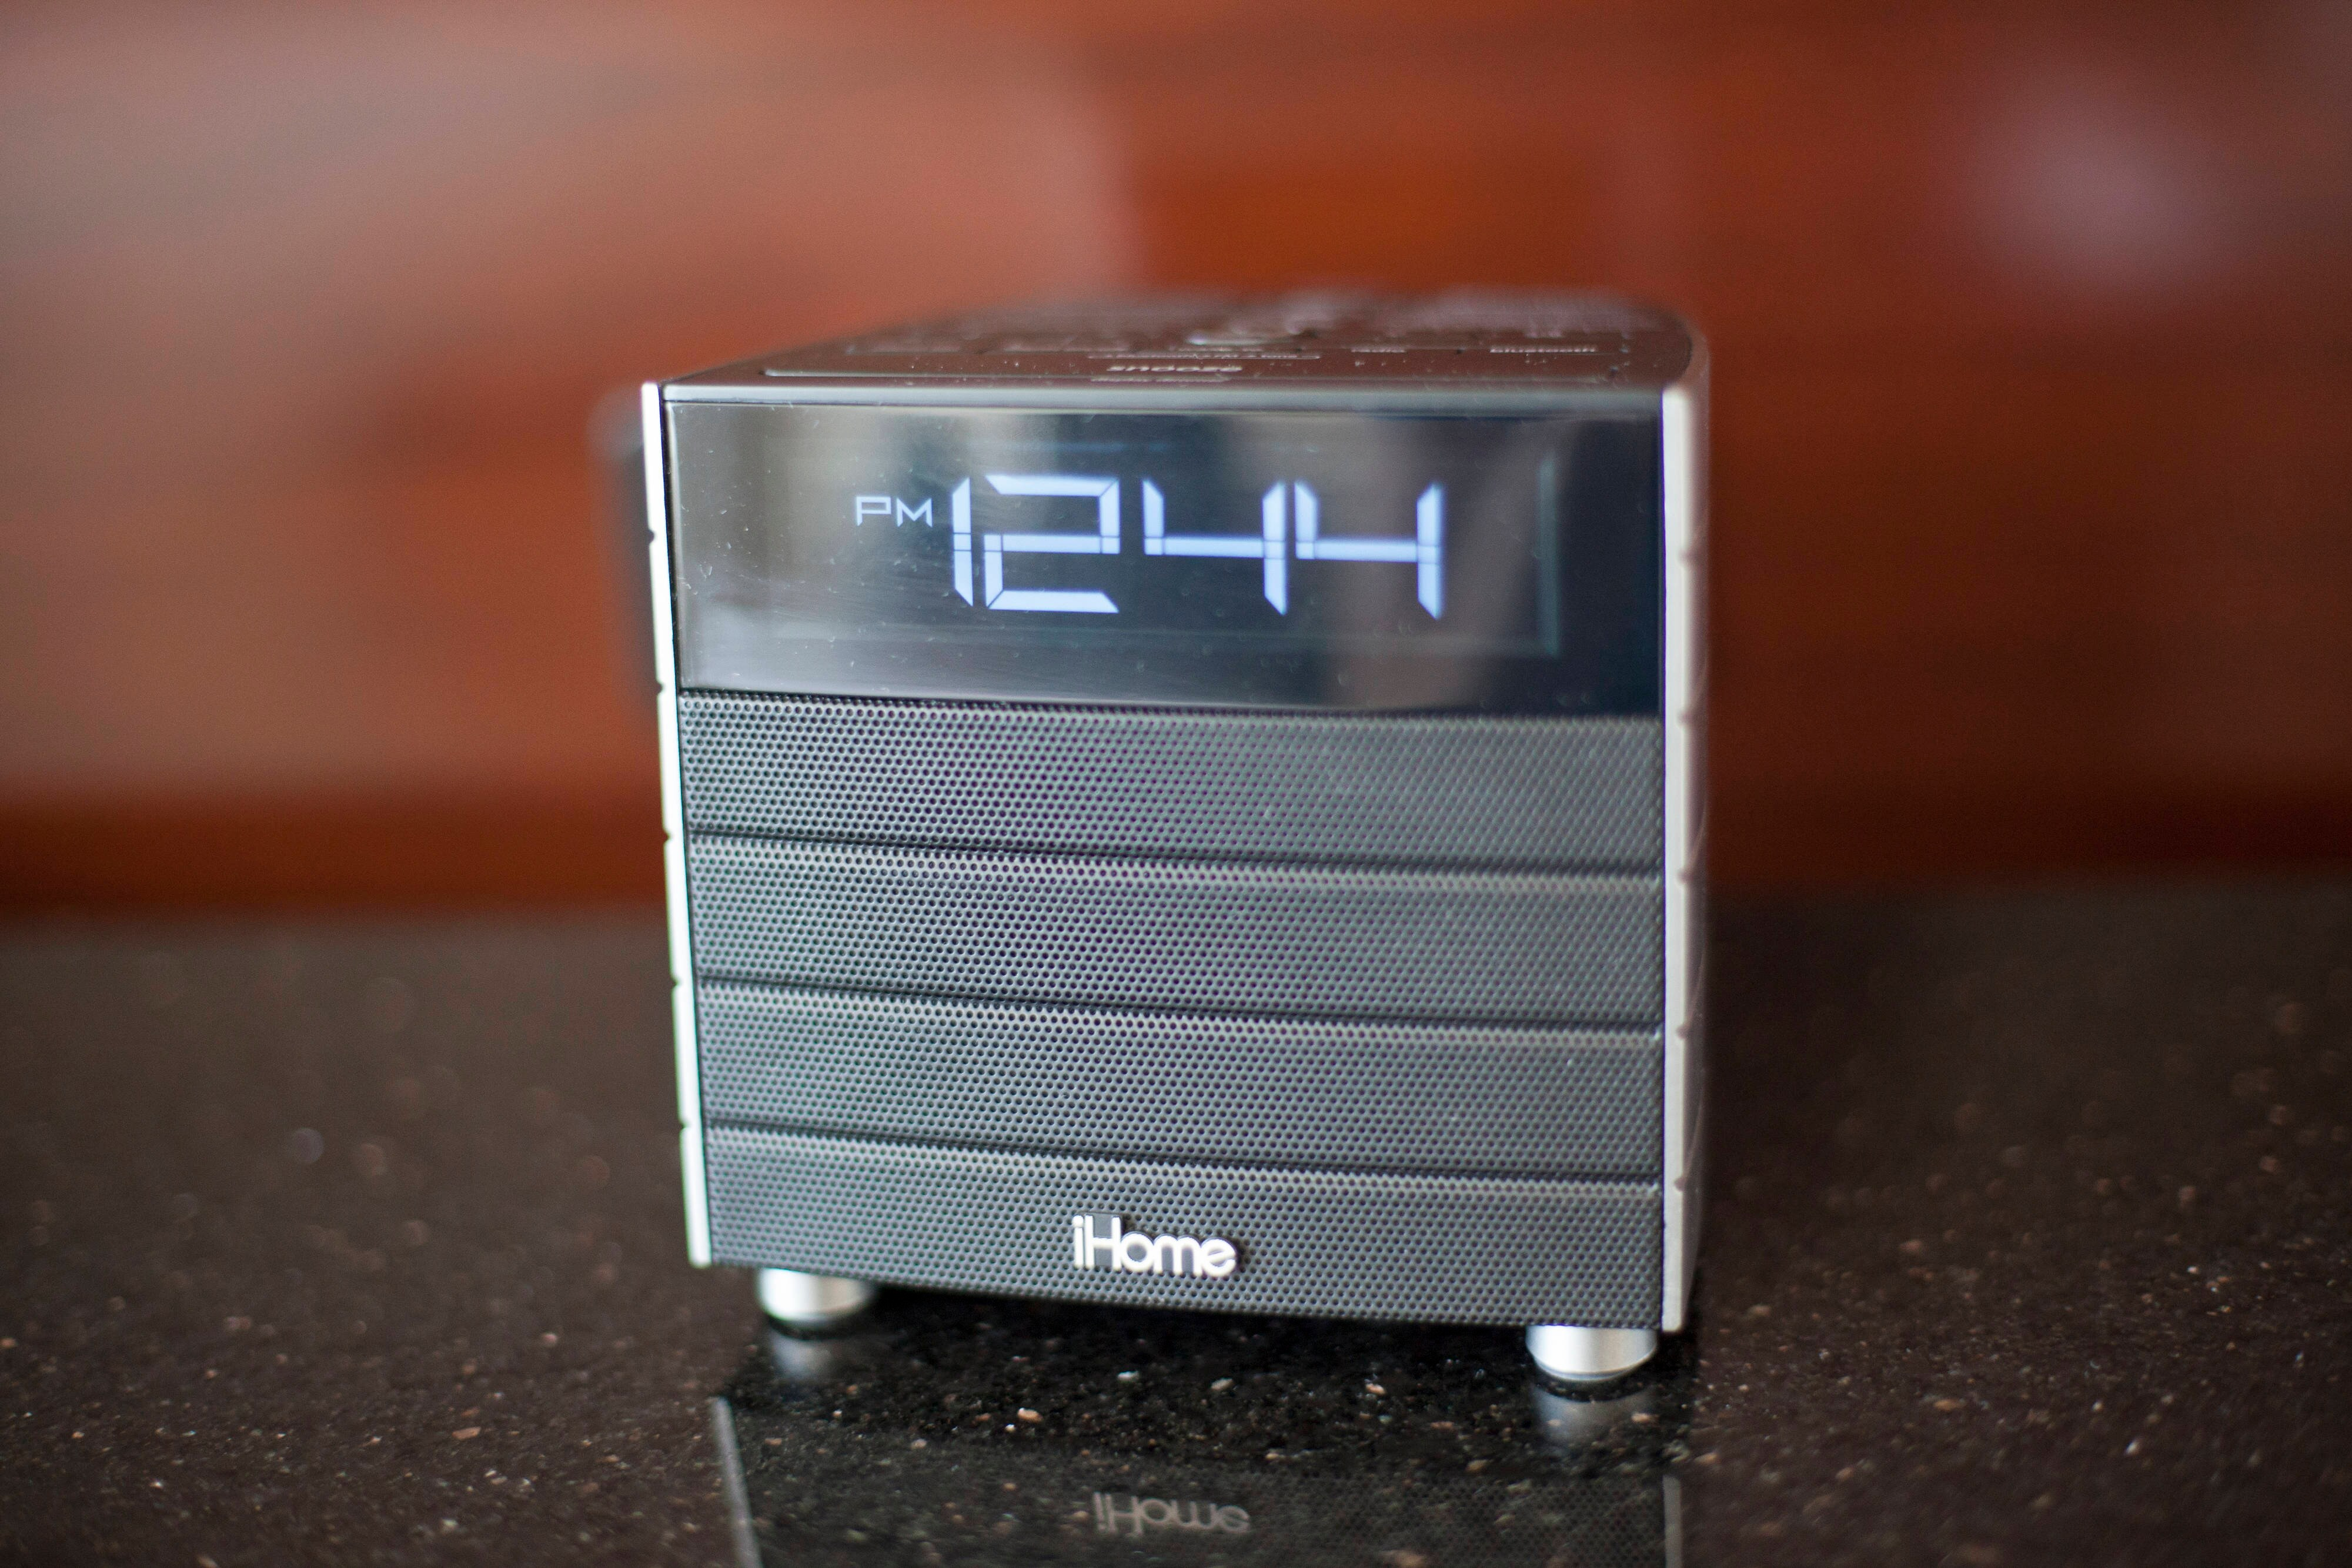 Plano Hotel with iHome